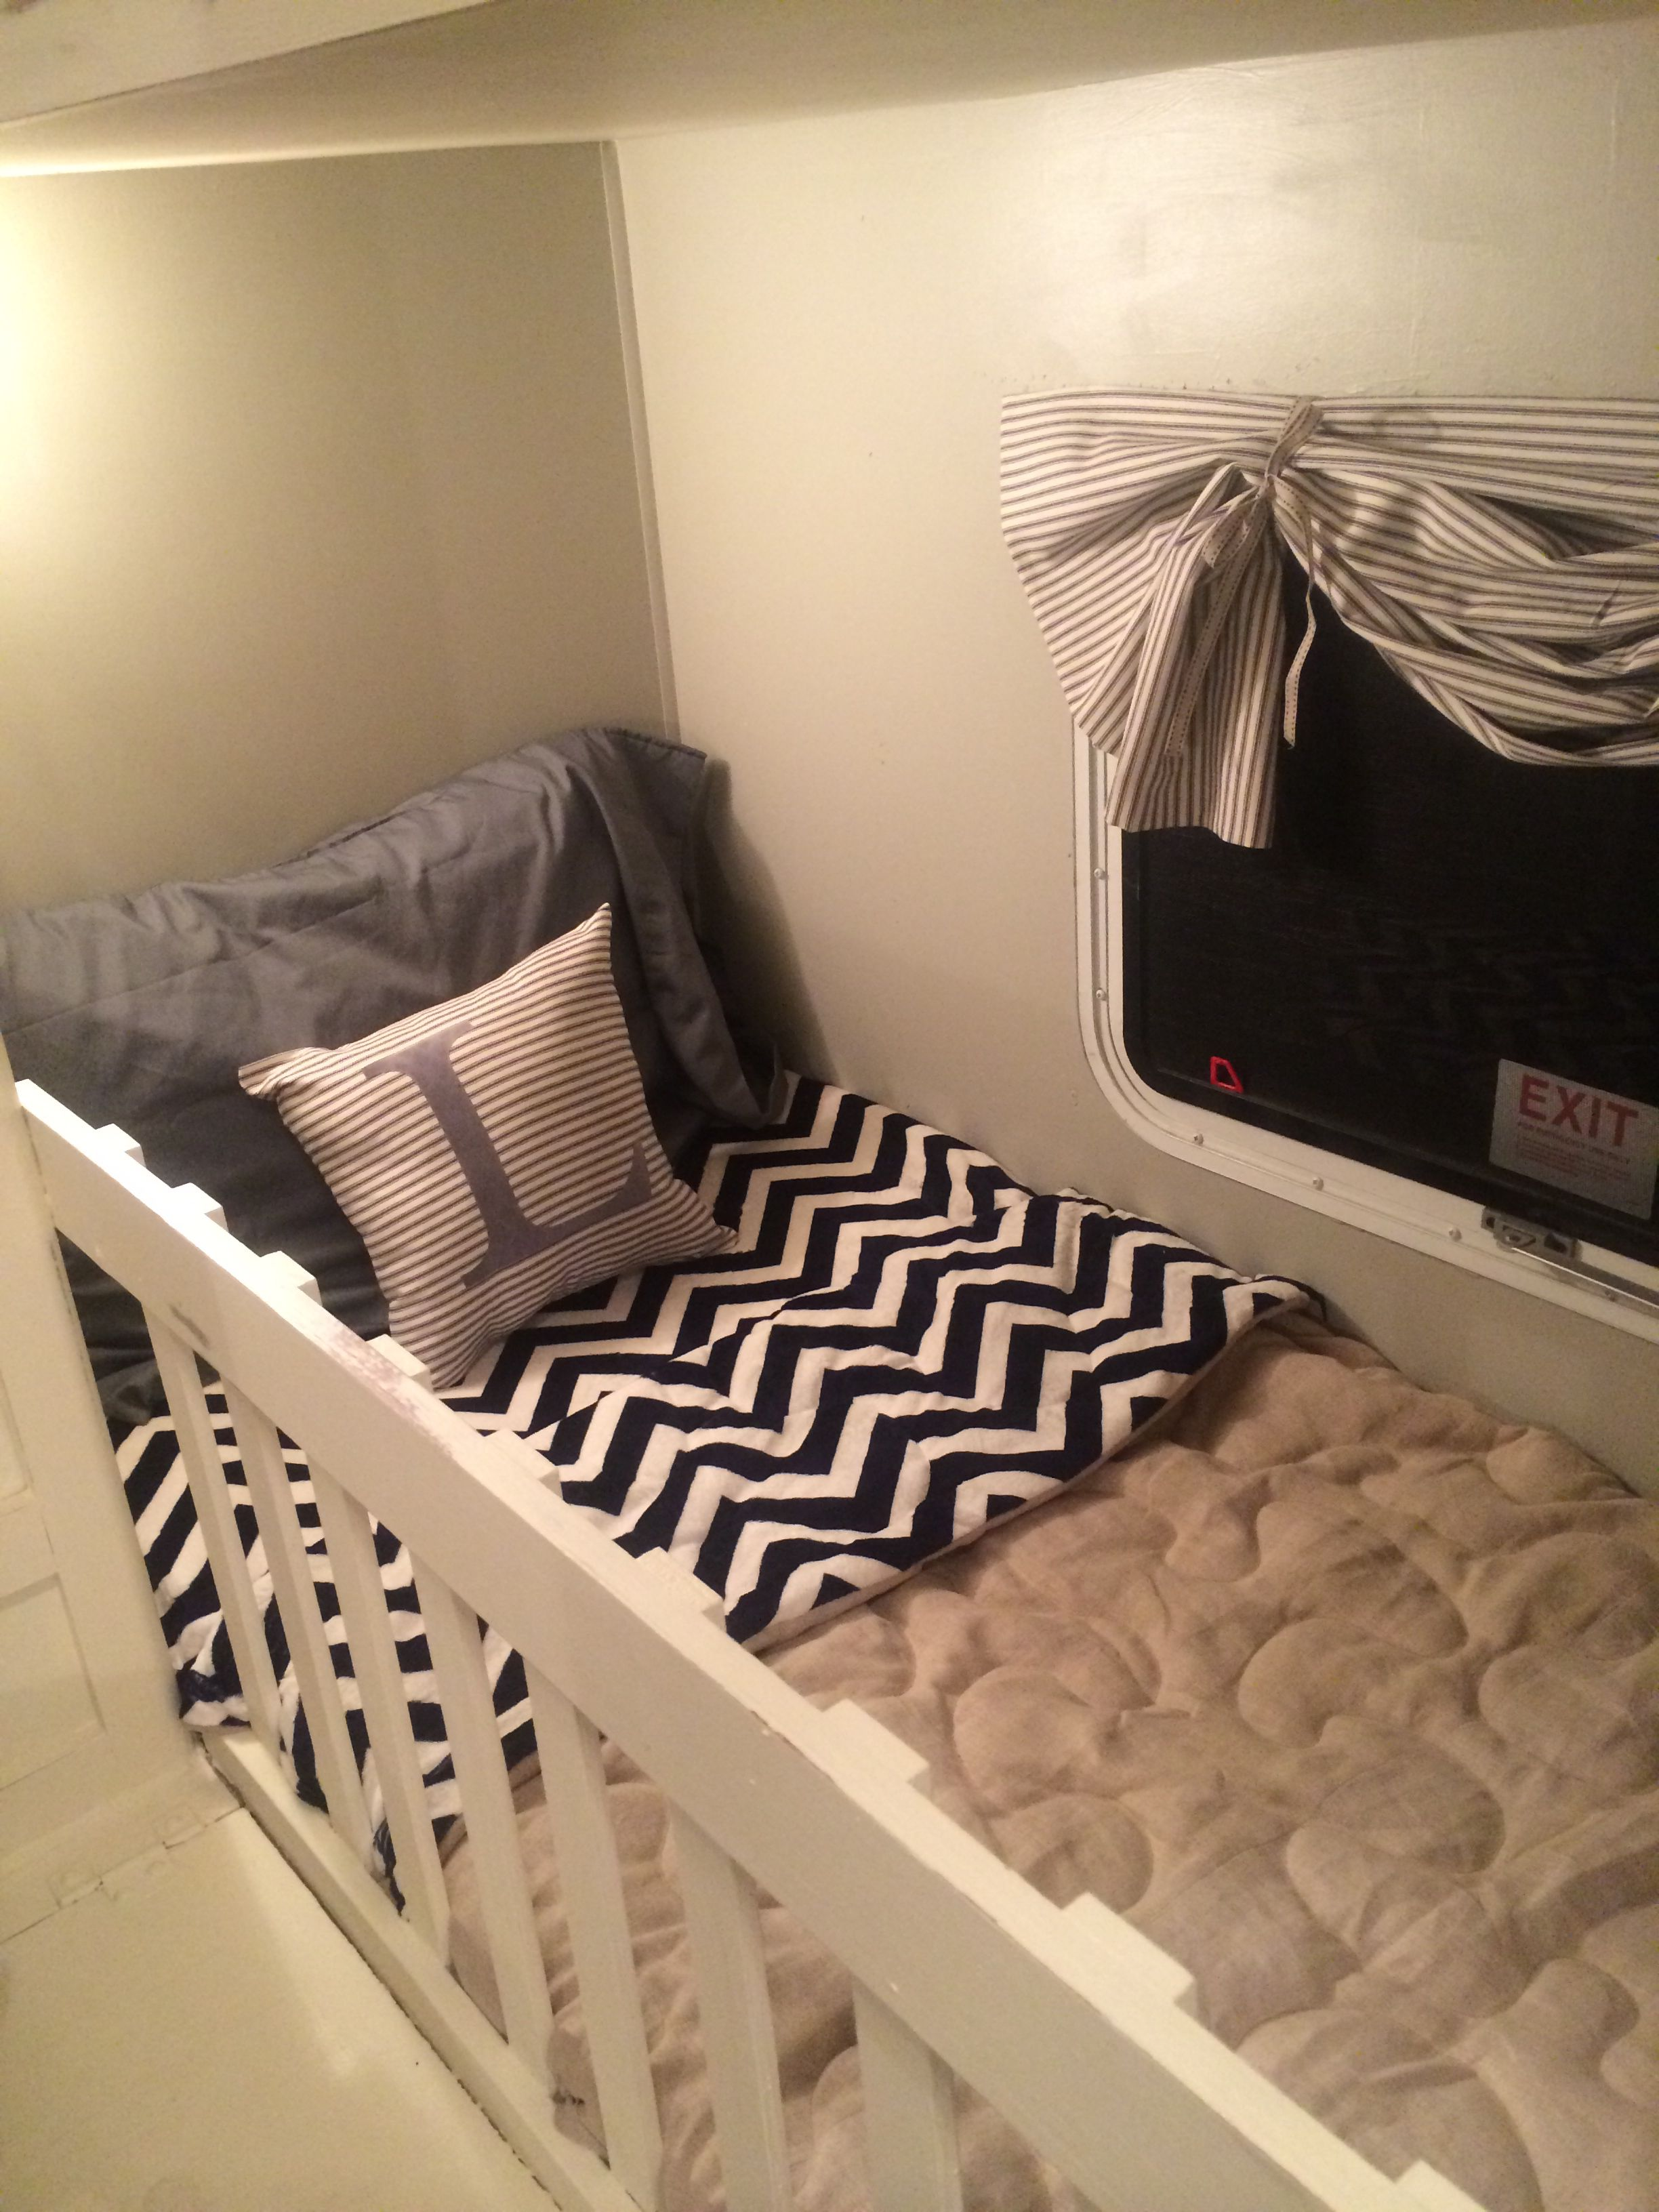 Lettys bunk! Turned into crib, didn't want a pack n play